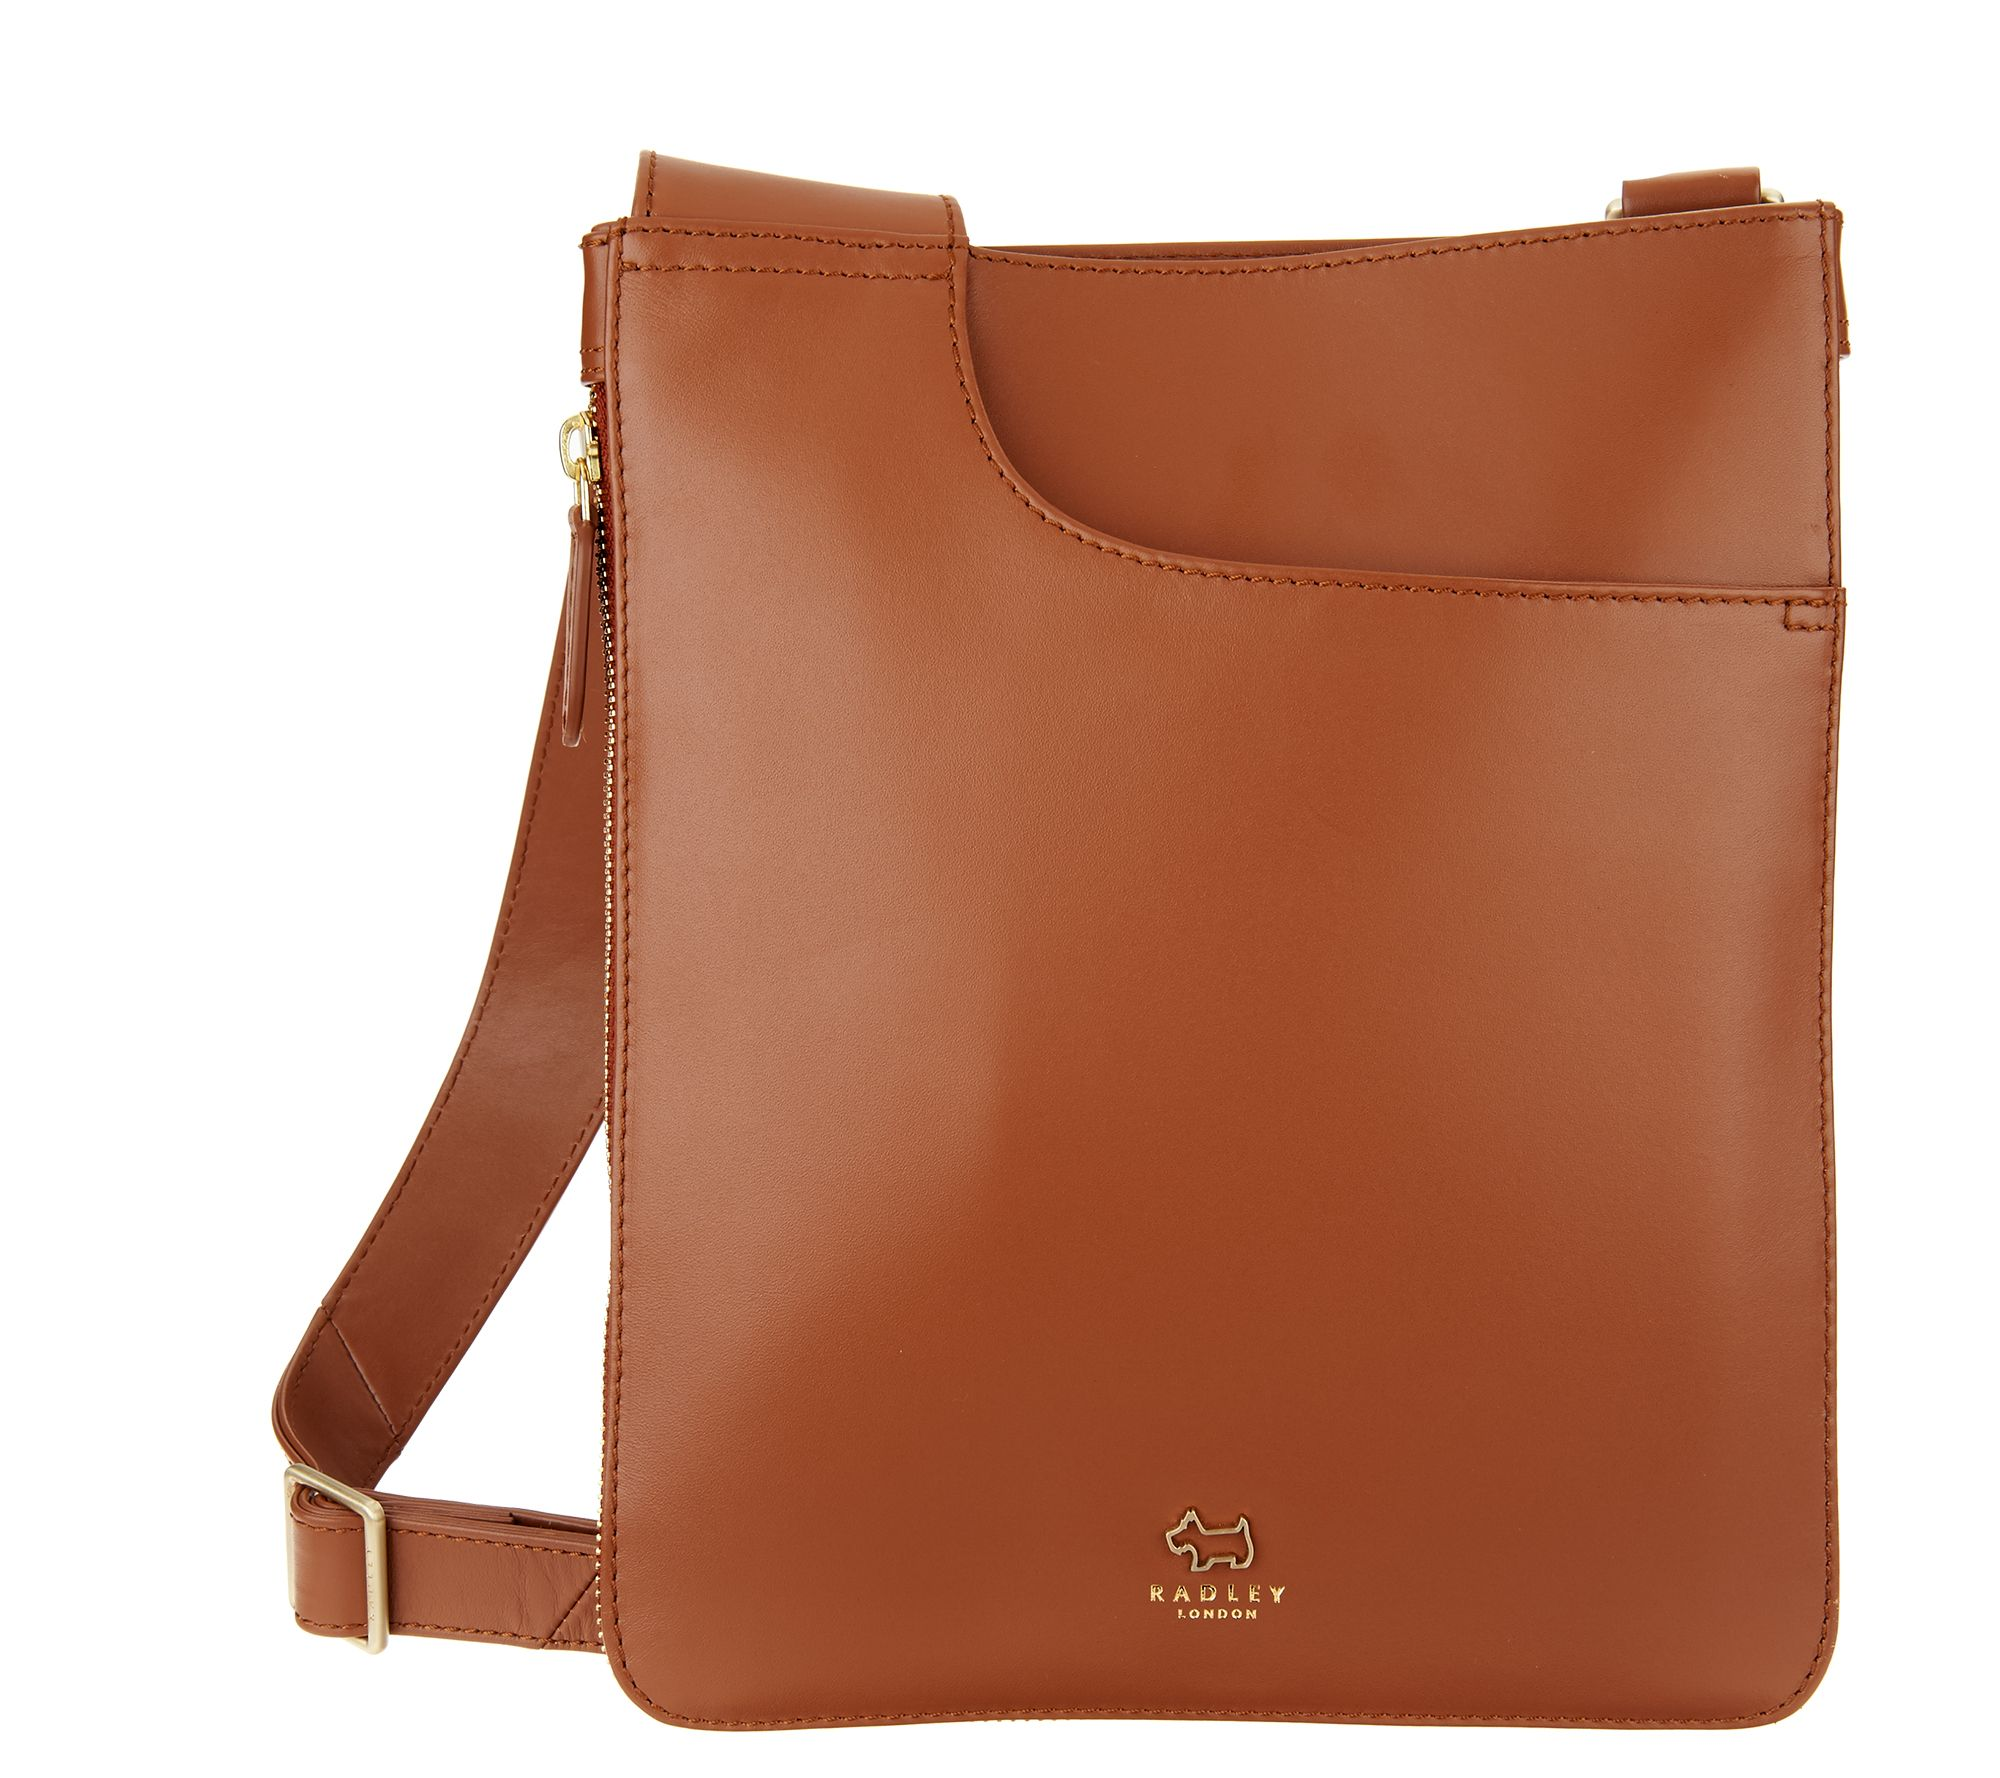 a56d03d43f RADLEY London Medium Pockets Leather Crossbody Handbag - Page 1 — QVC.com